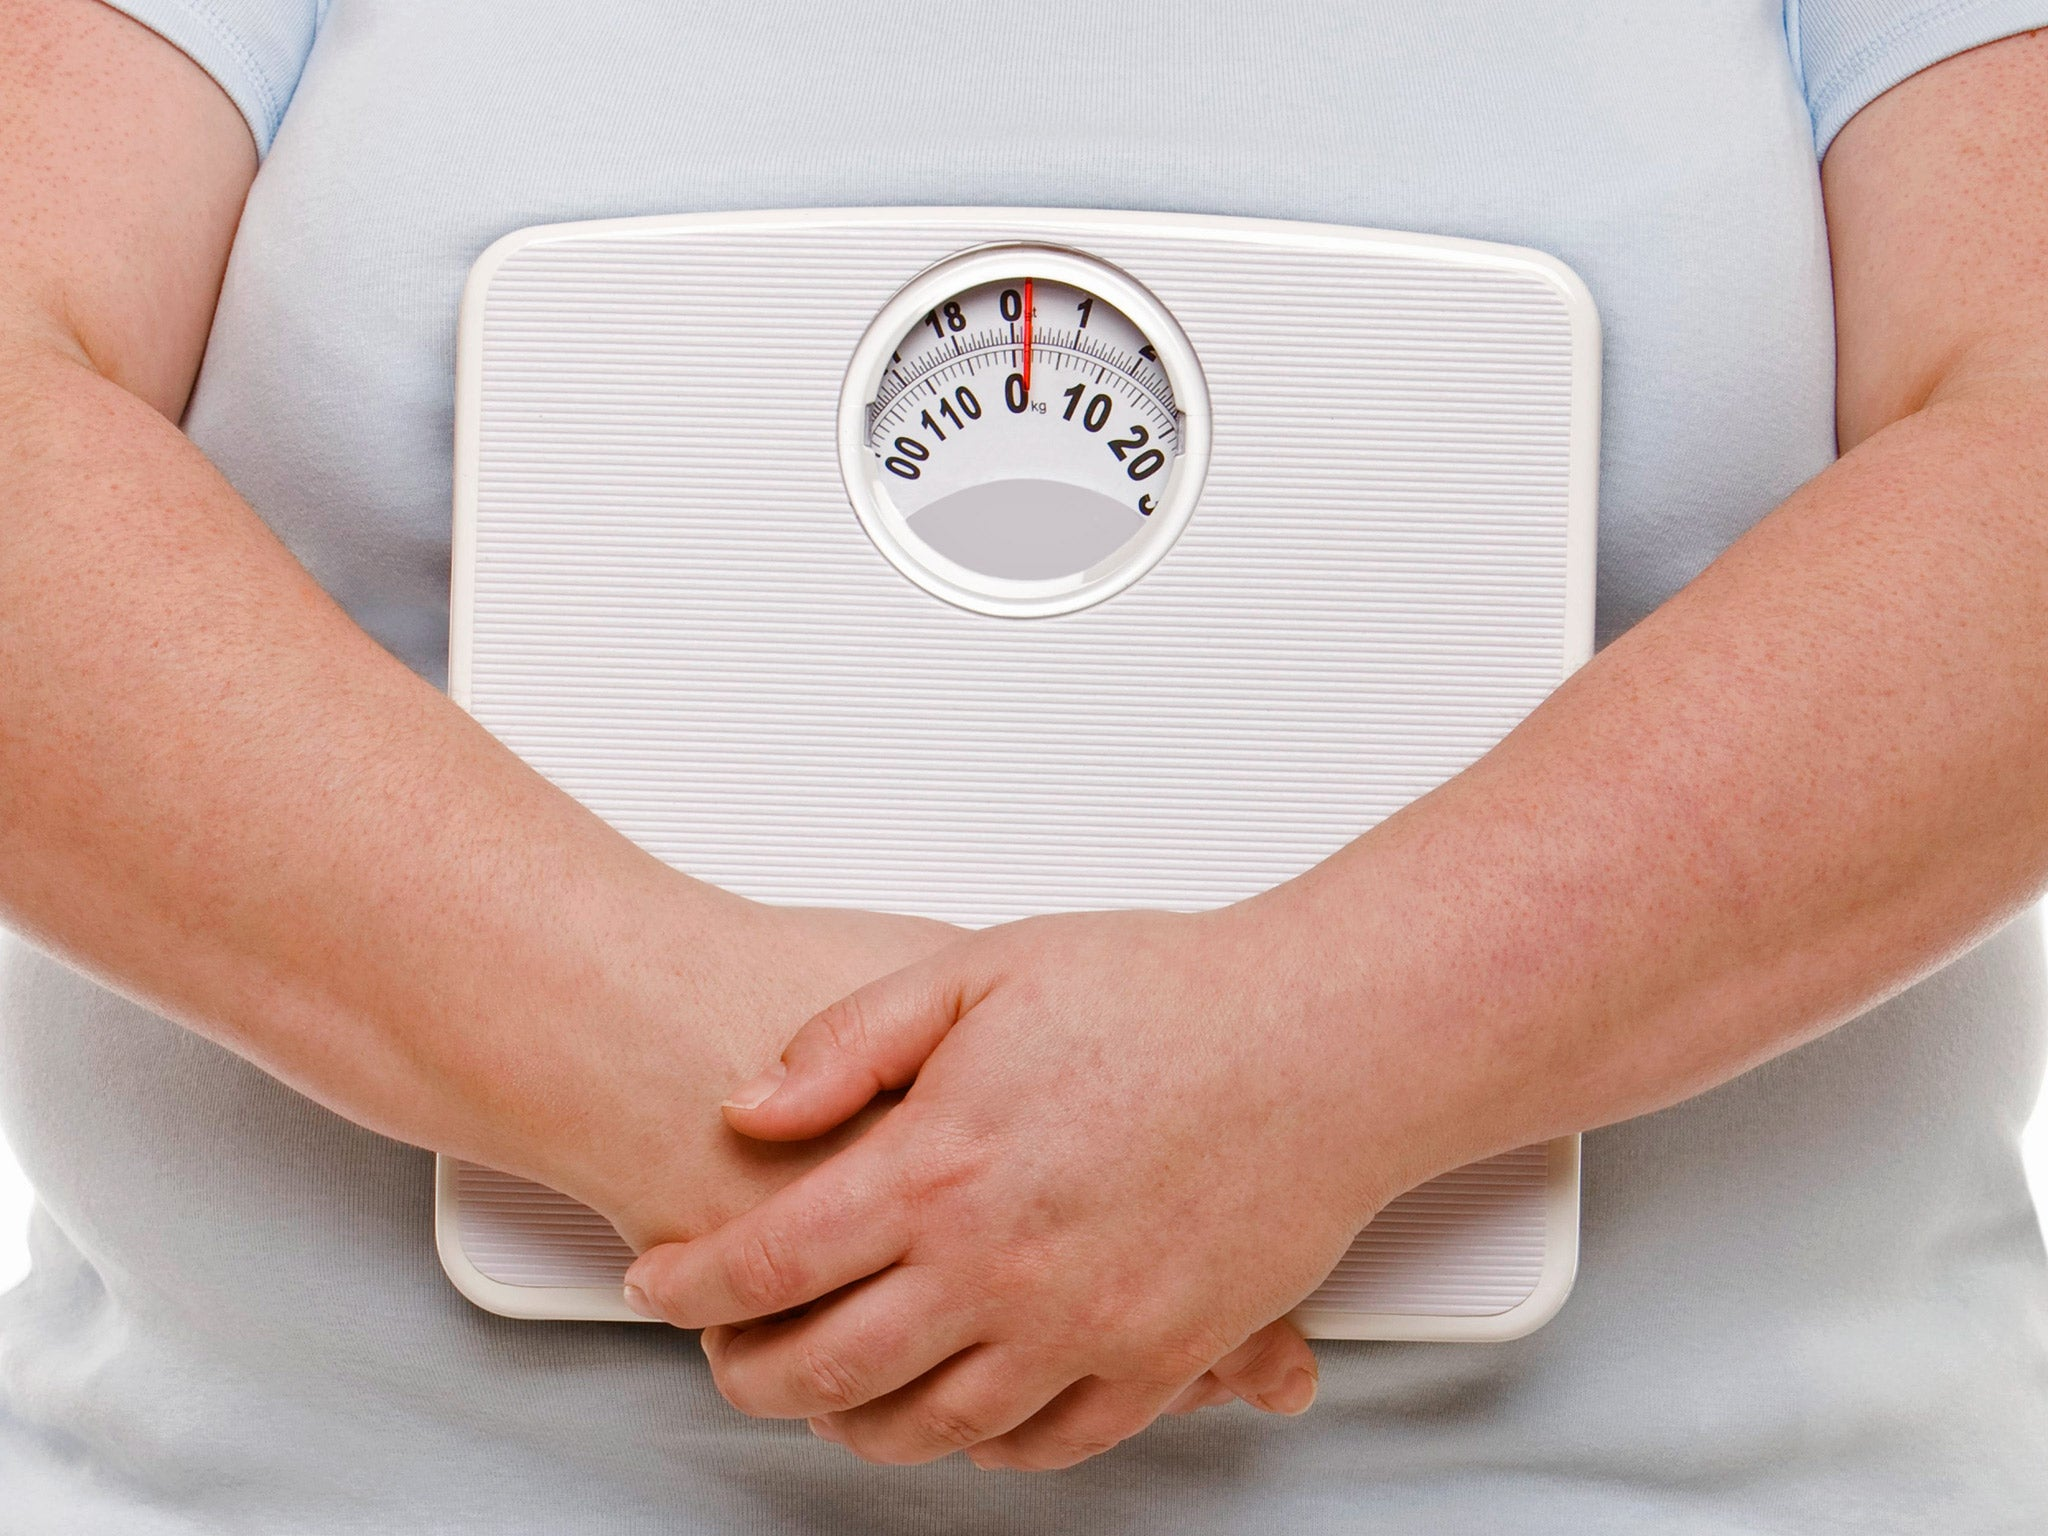 How can we loose our weight easily?